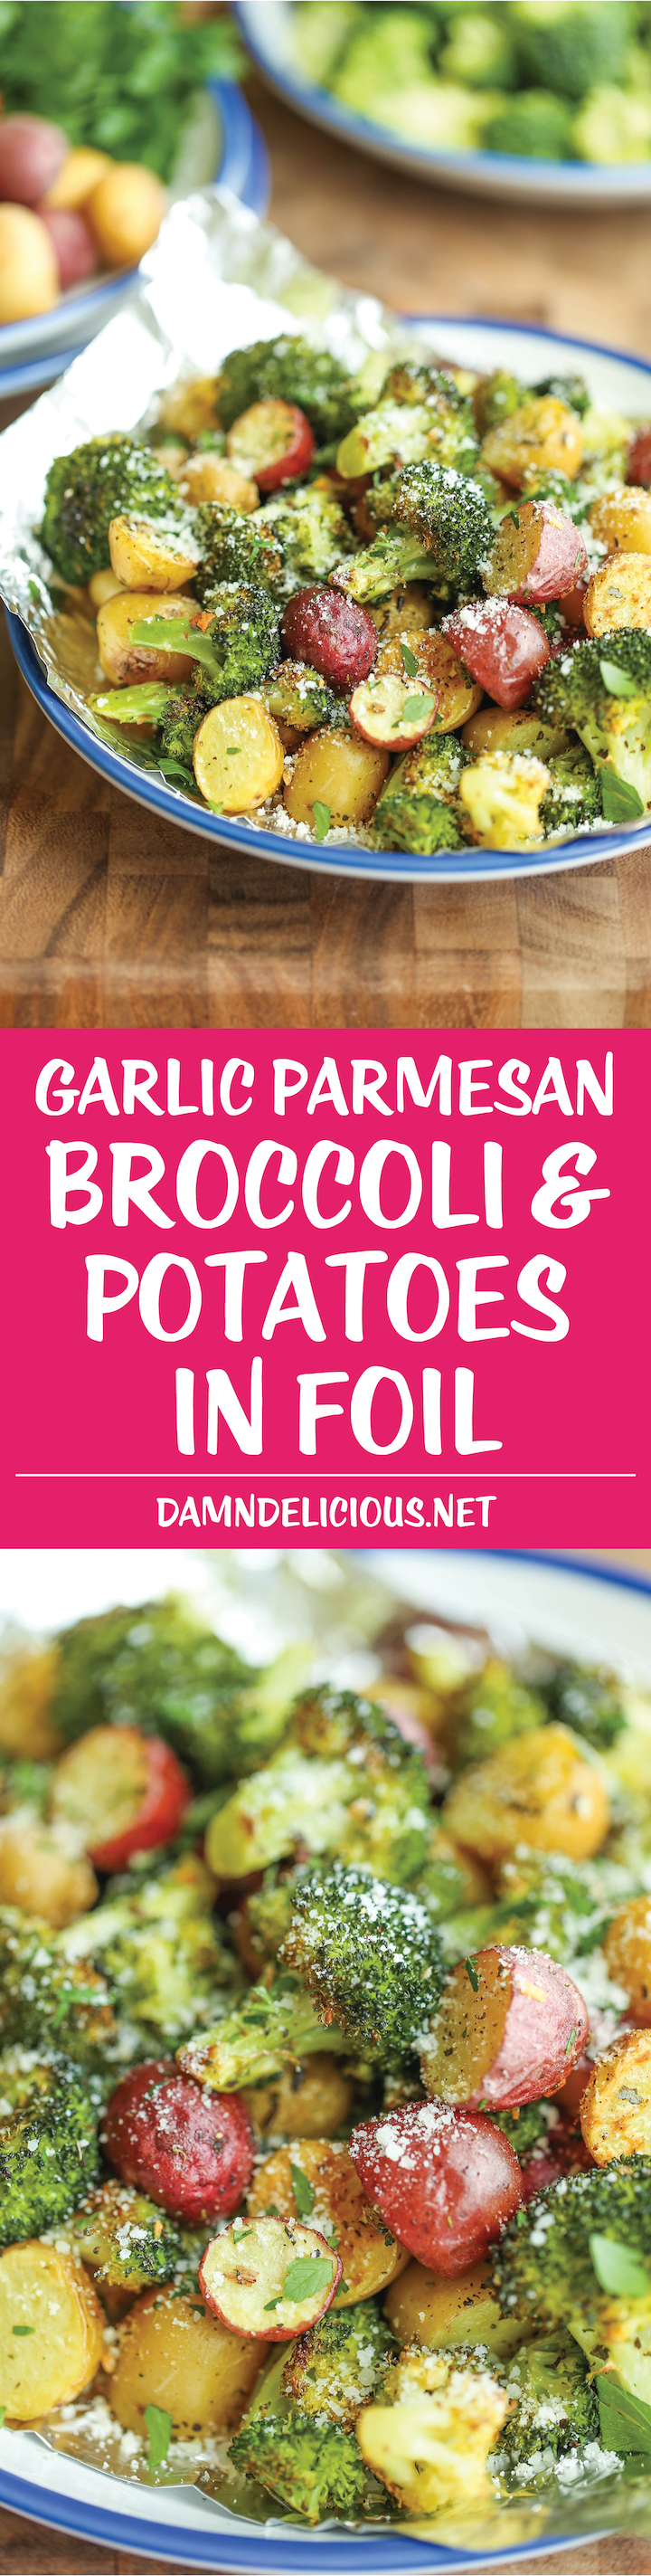 Garlic Parmesan Broccoli and Potatoes in Foil | Easy Foil-Wrapped Camping Recipes For Outdoor Meals